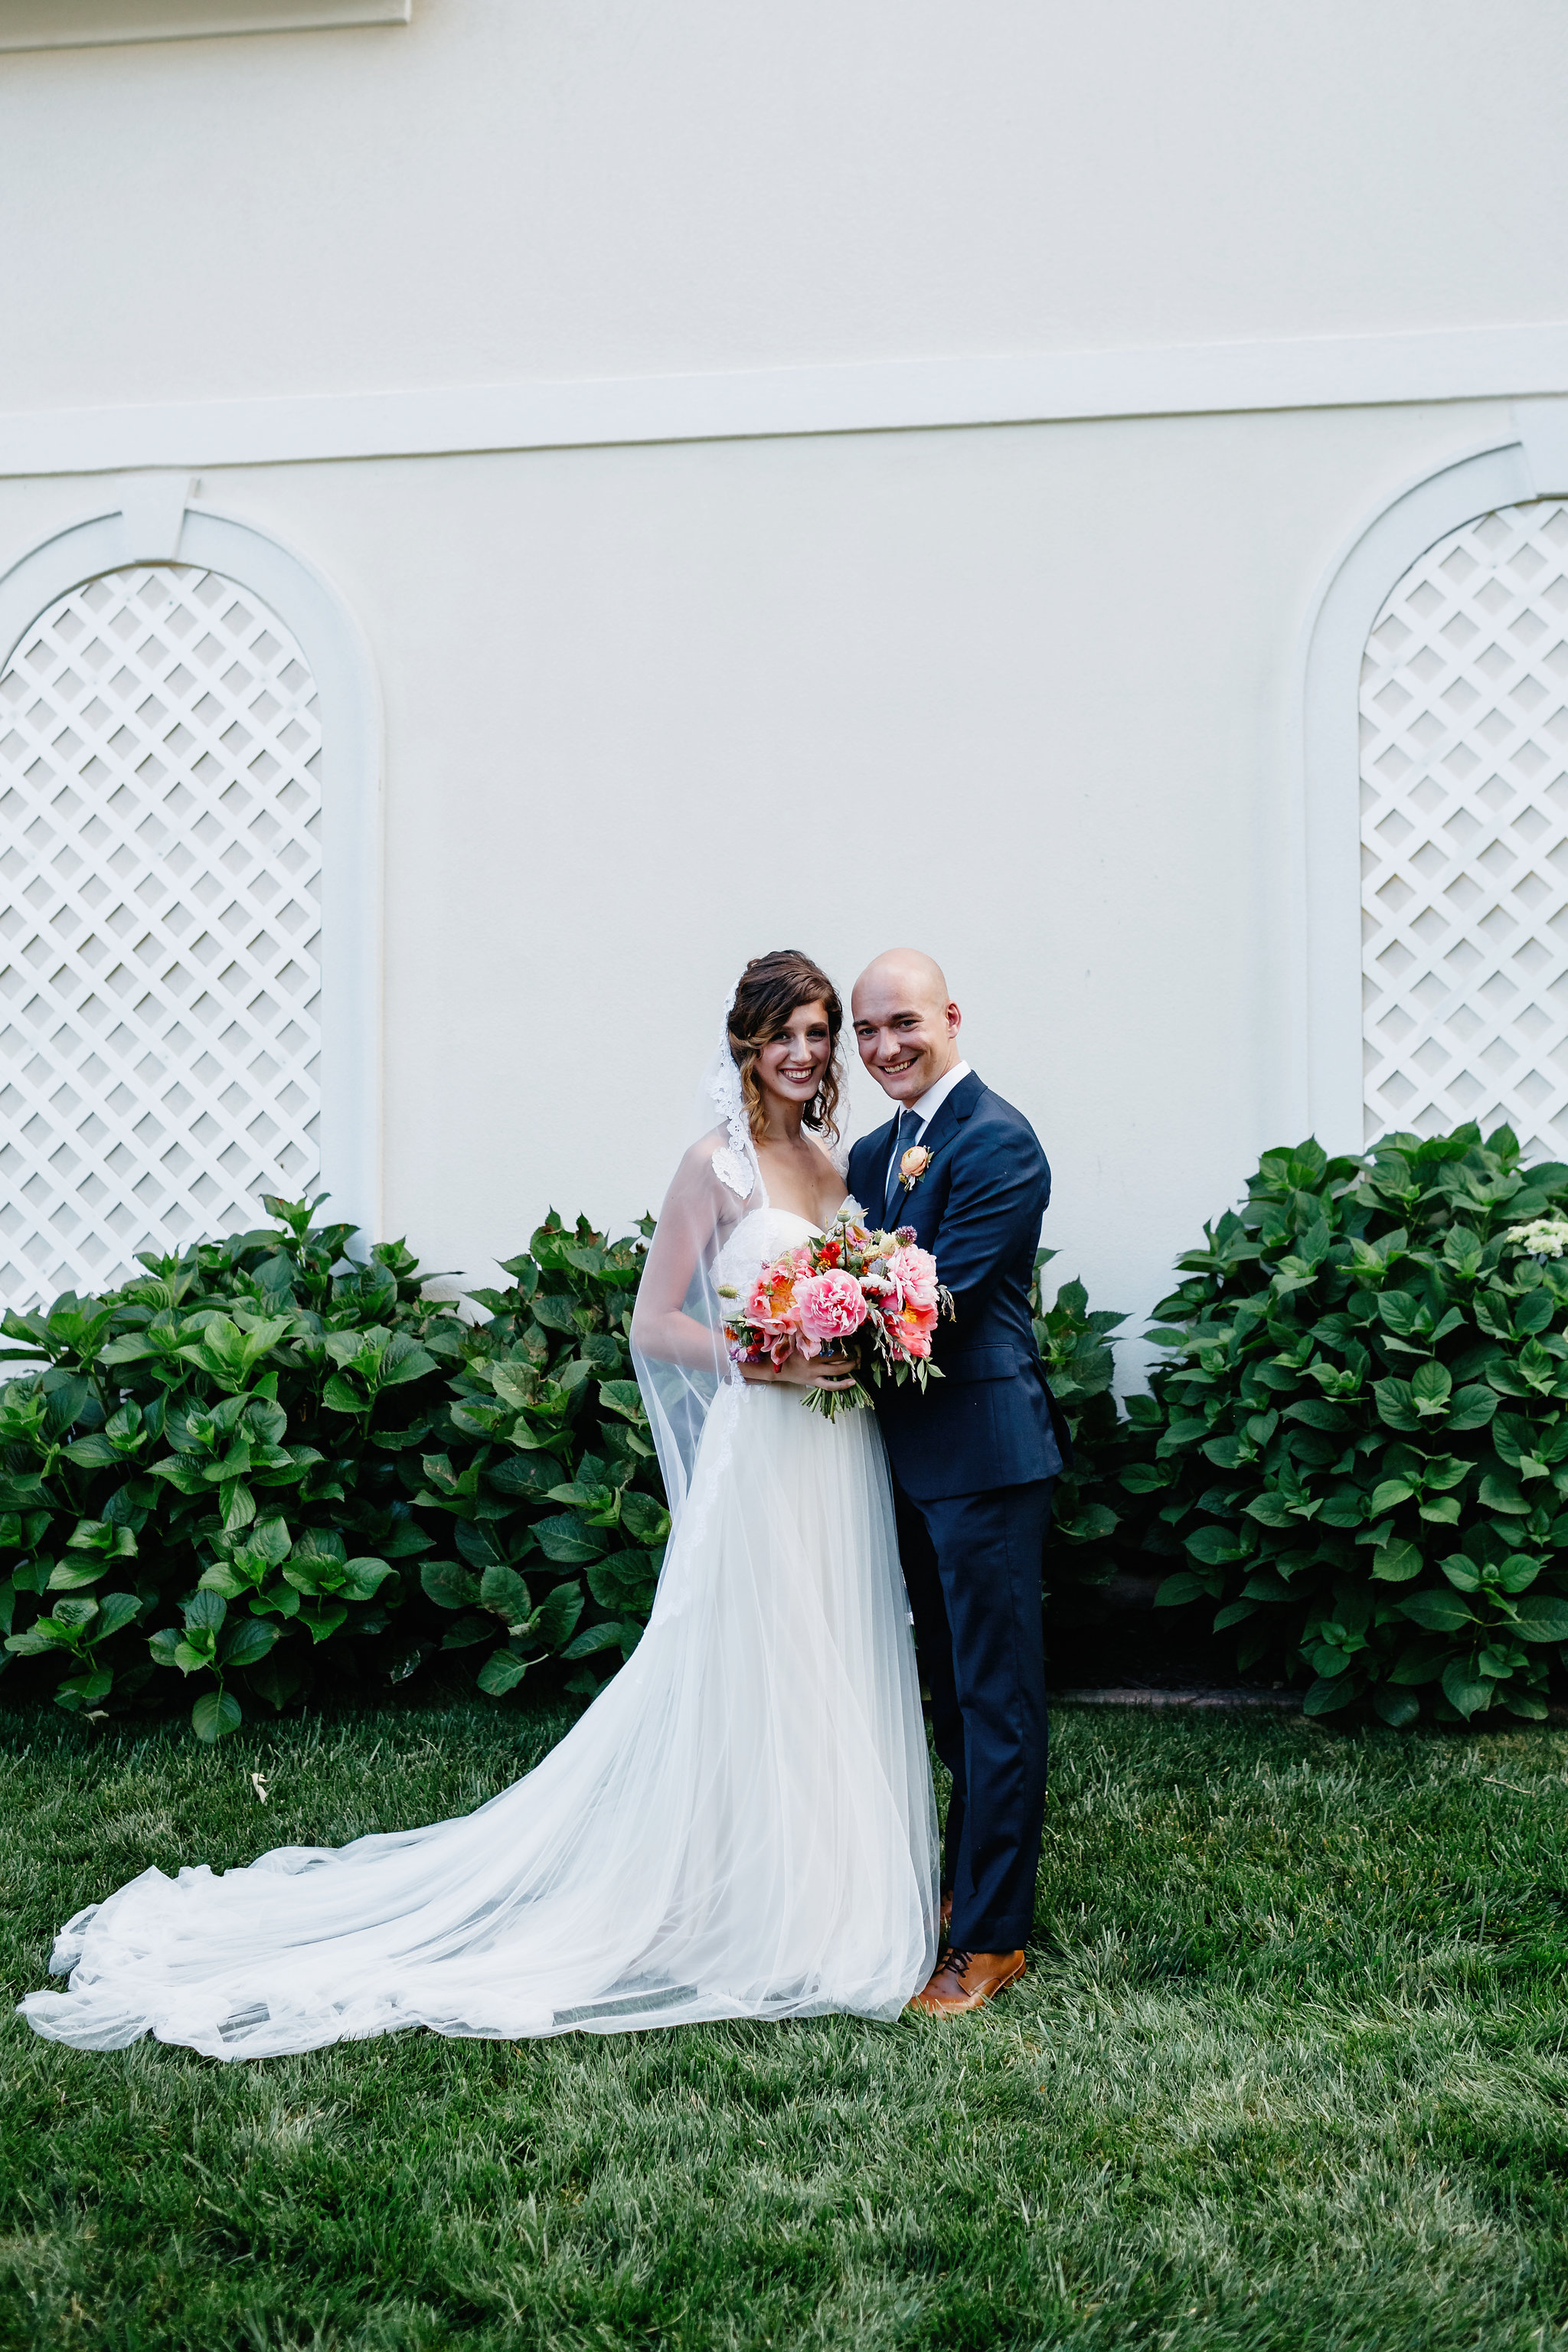 Maria&Dave2017-07-28at9.36.57AM48.jpg